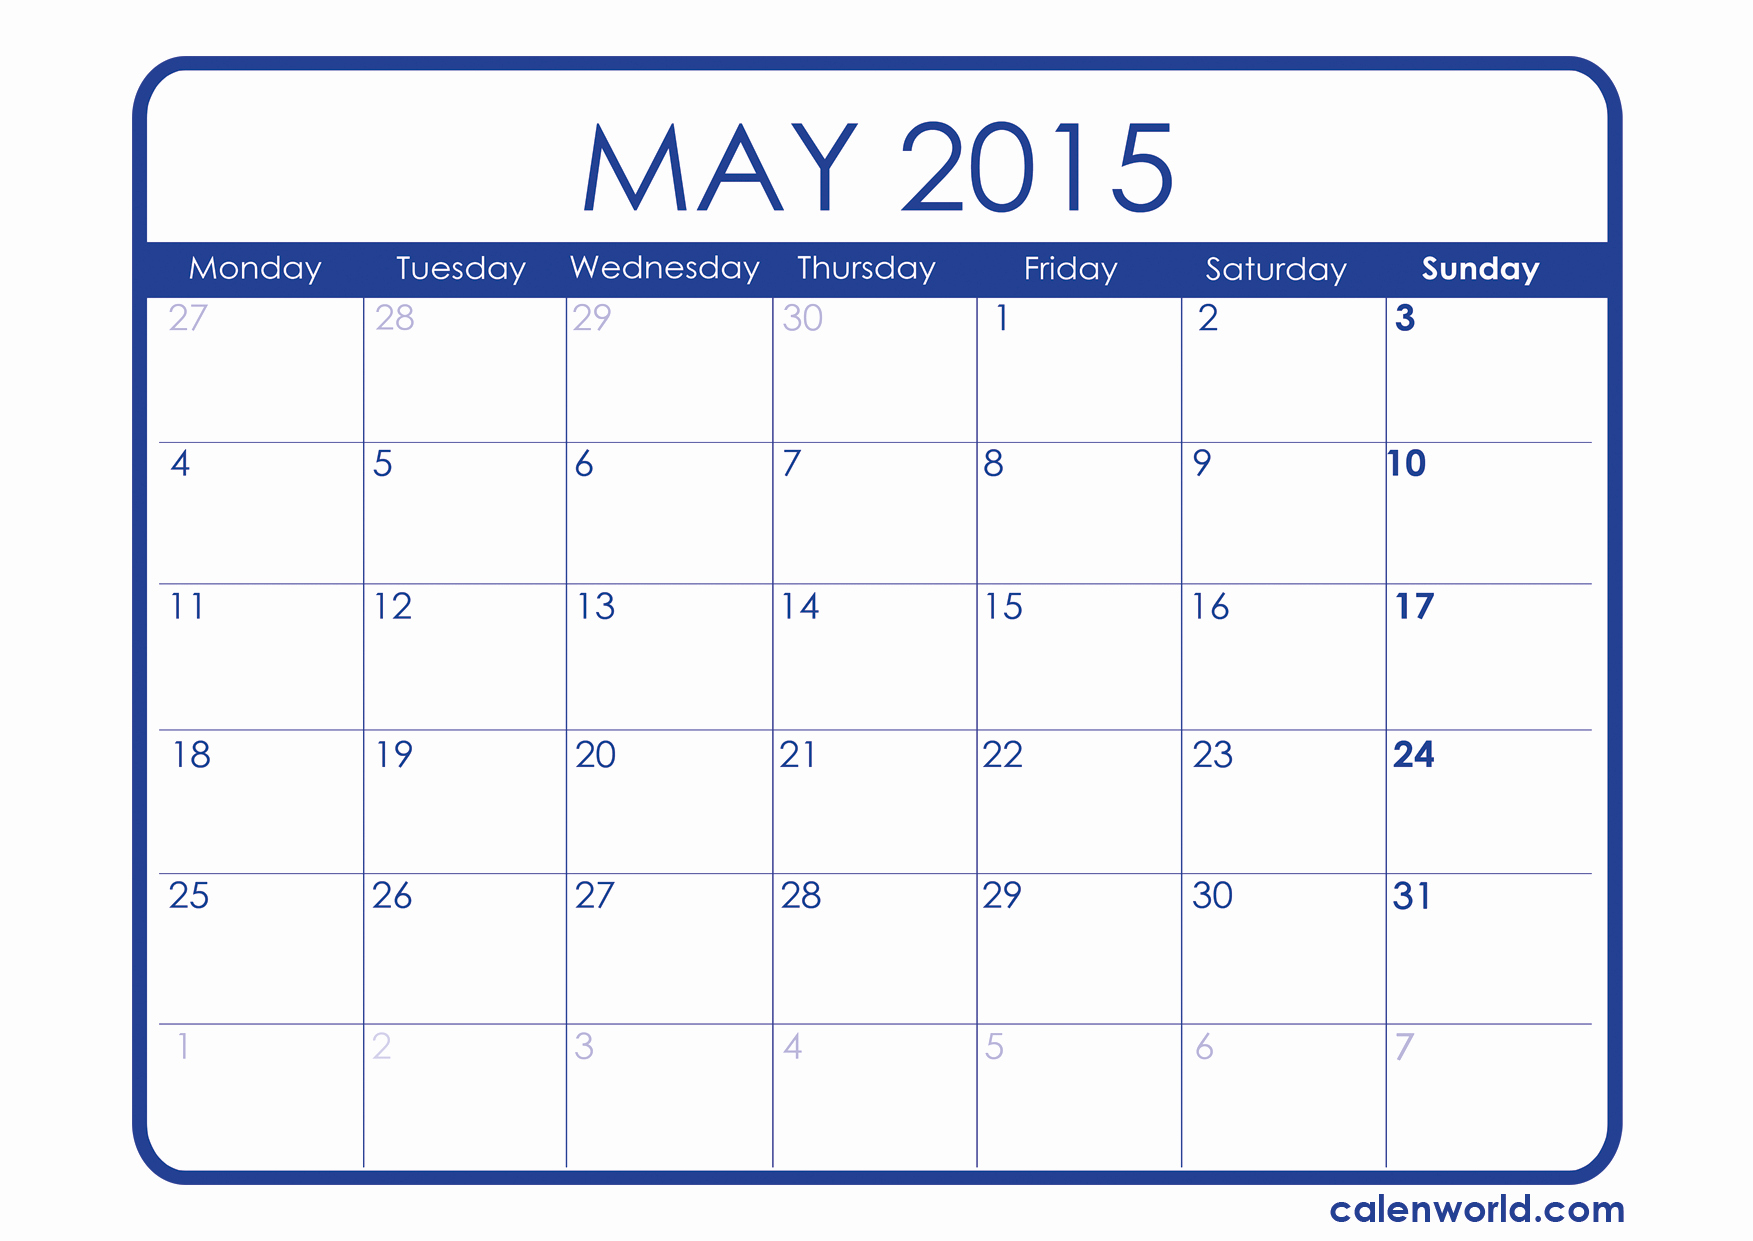 Calendar 2015 Printable with Holidays Elegant May 2015 Calendar